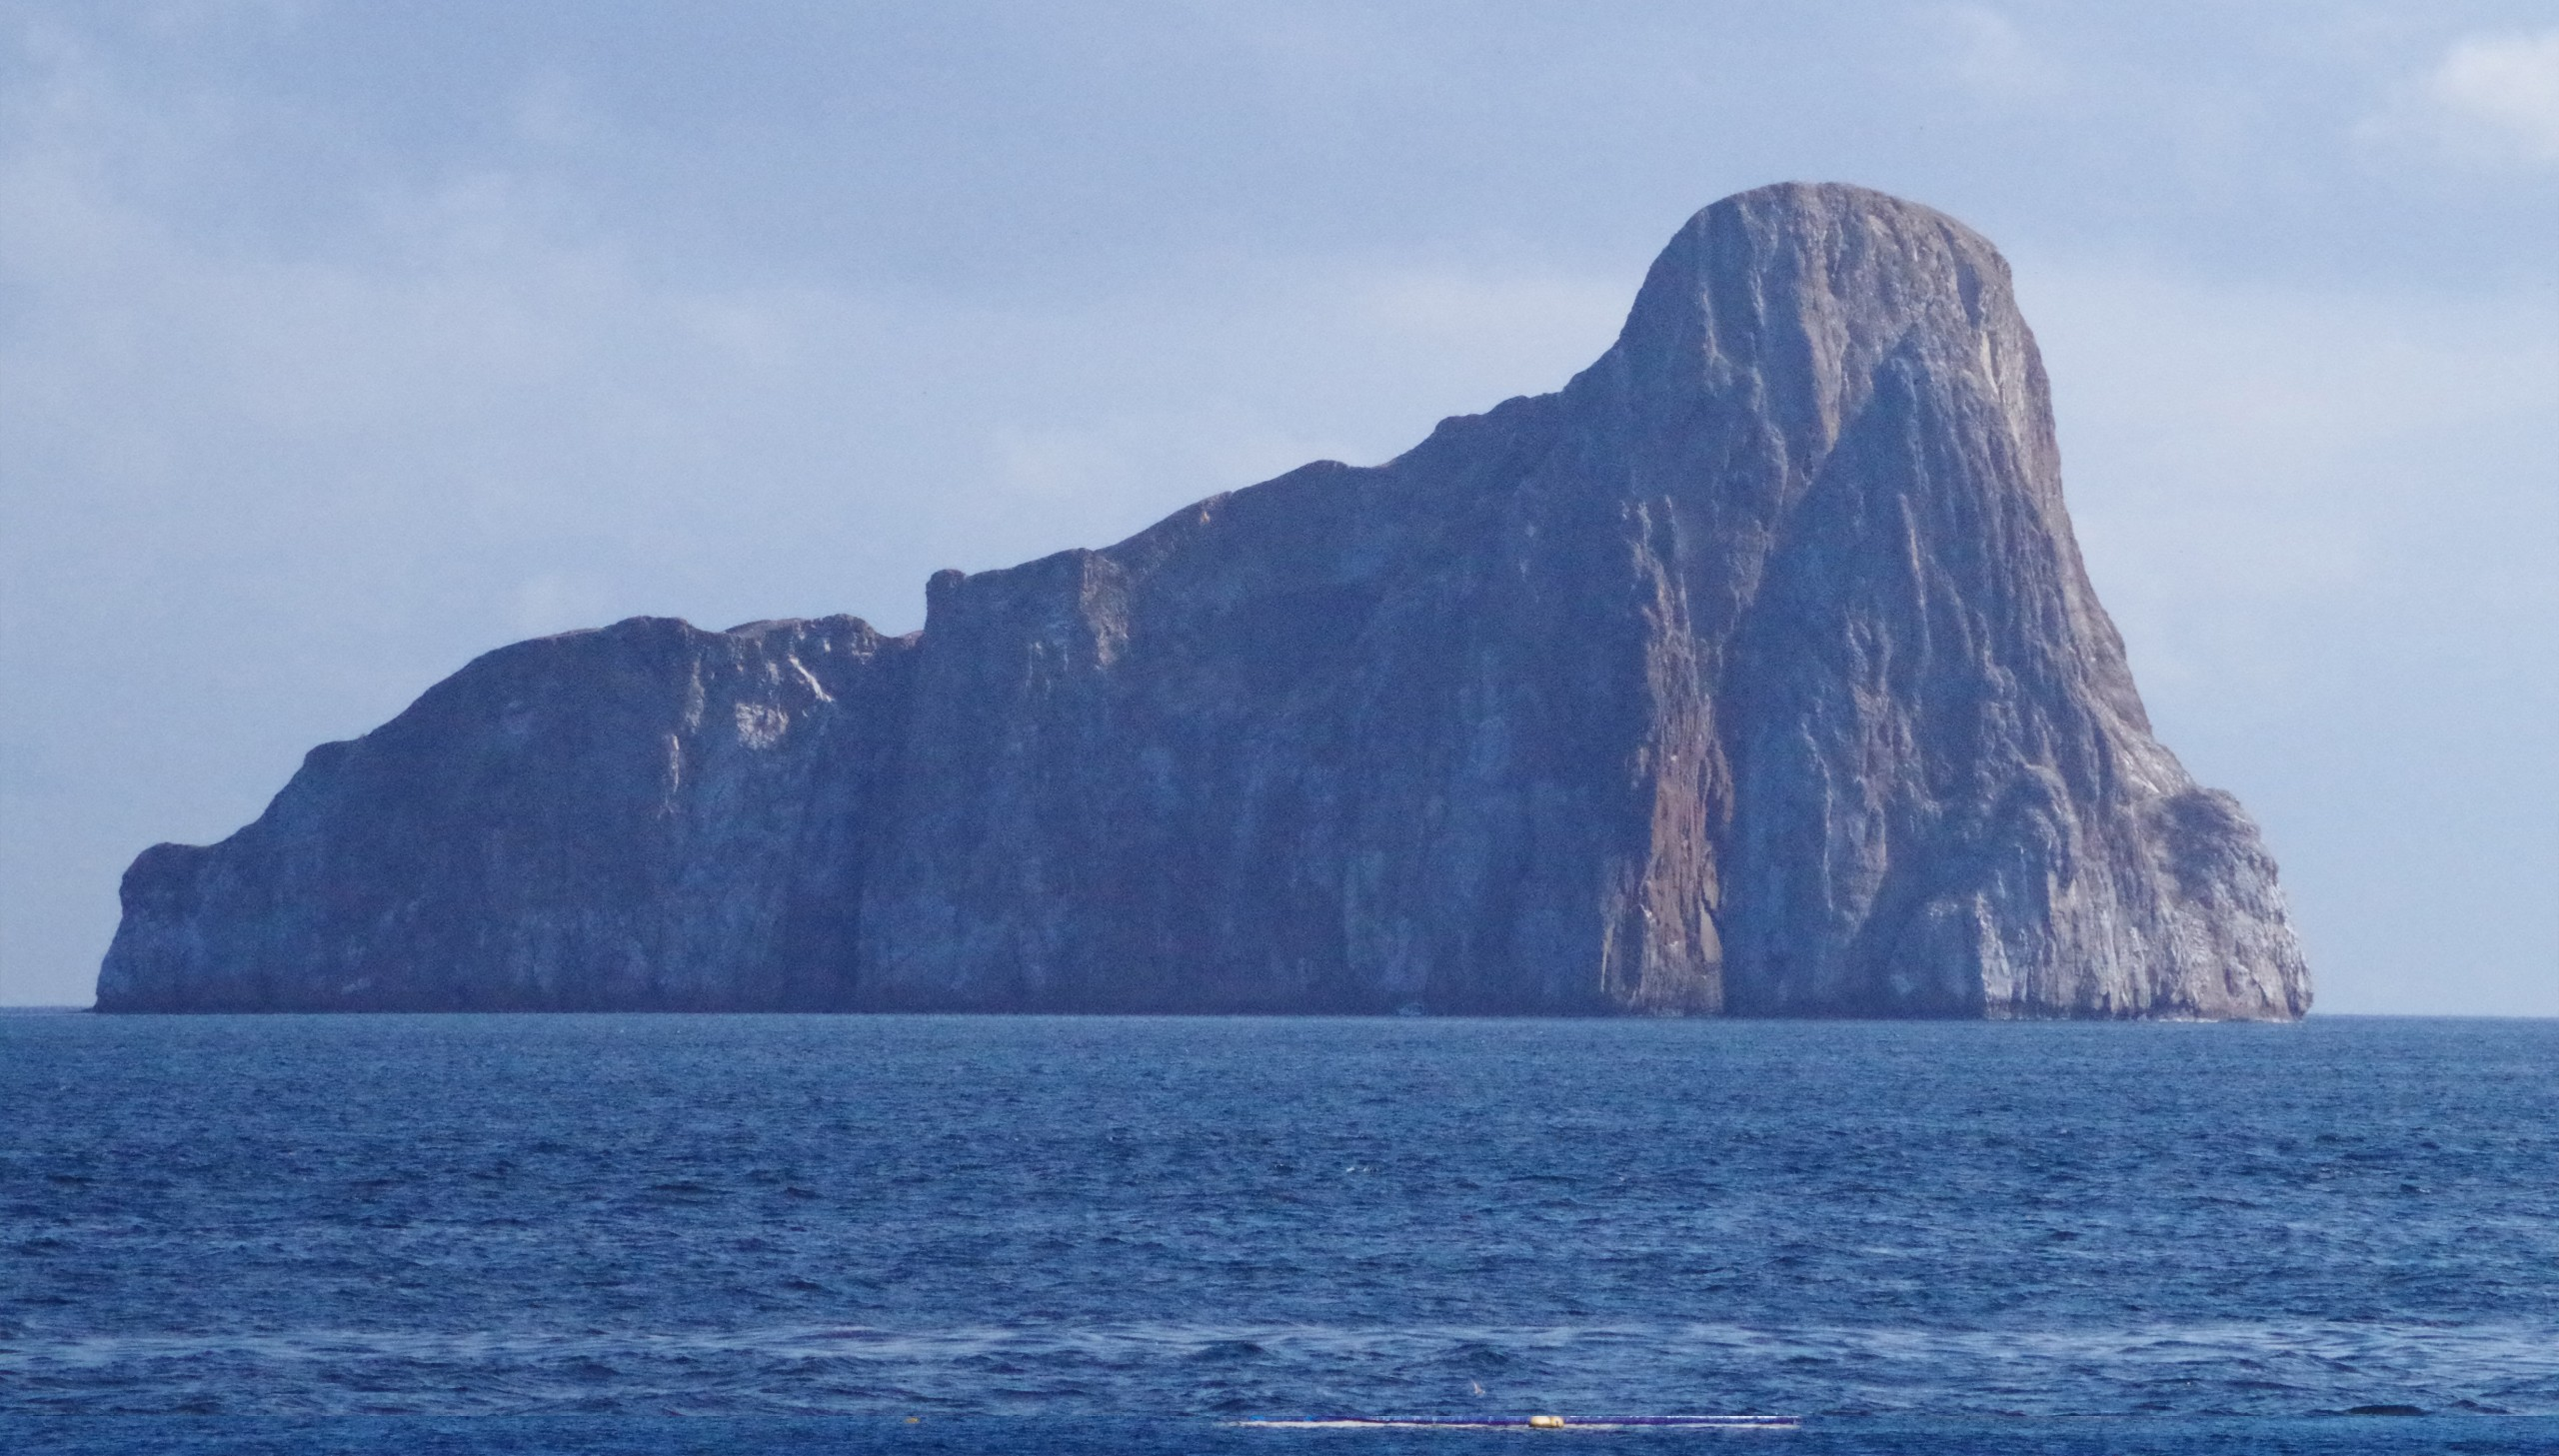 León Dormido, the sleeping lion, a striking rock formation that is surrounded by all manner of sea life.